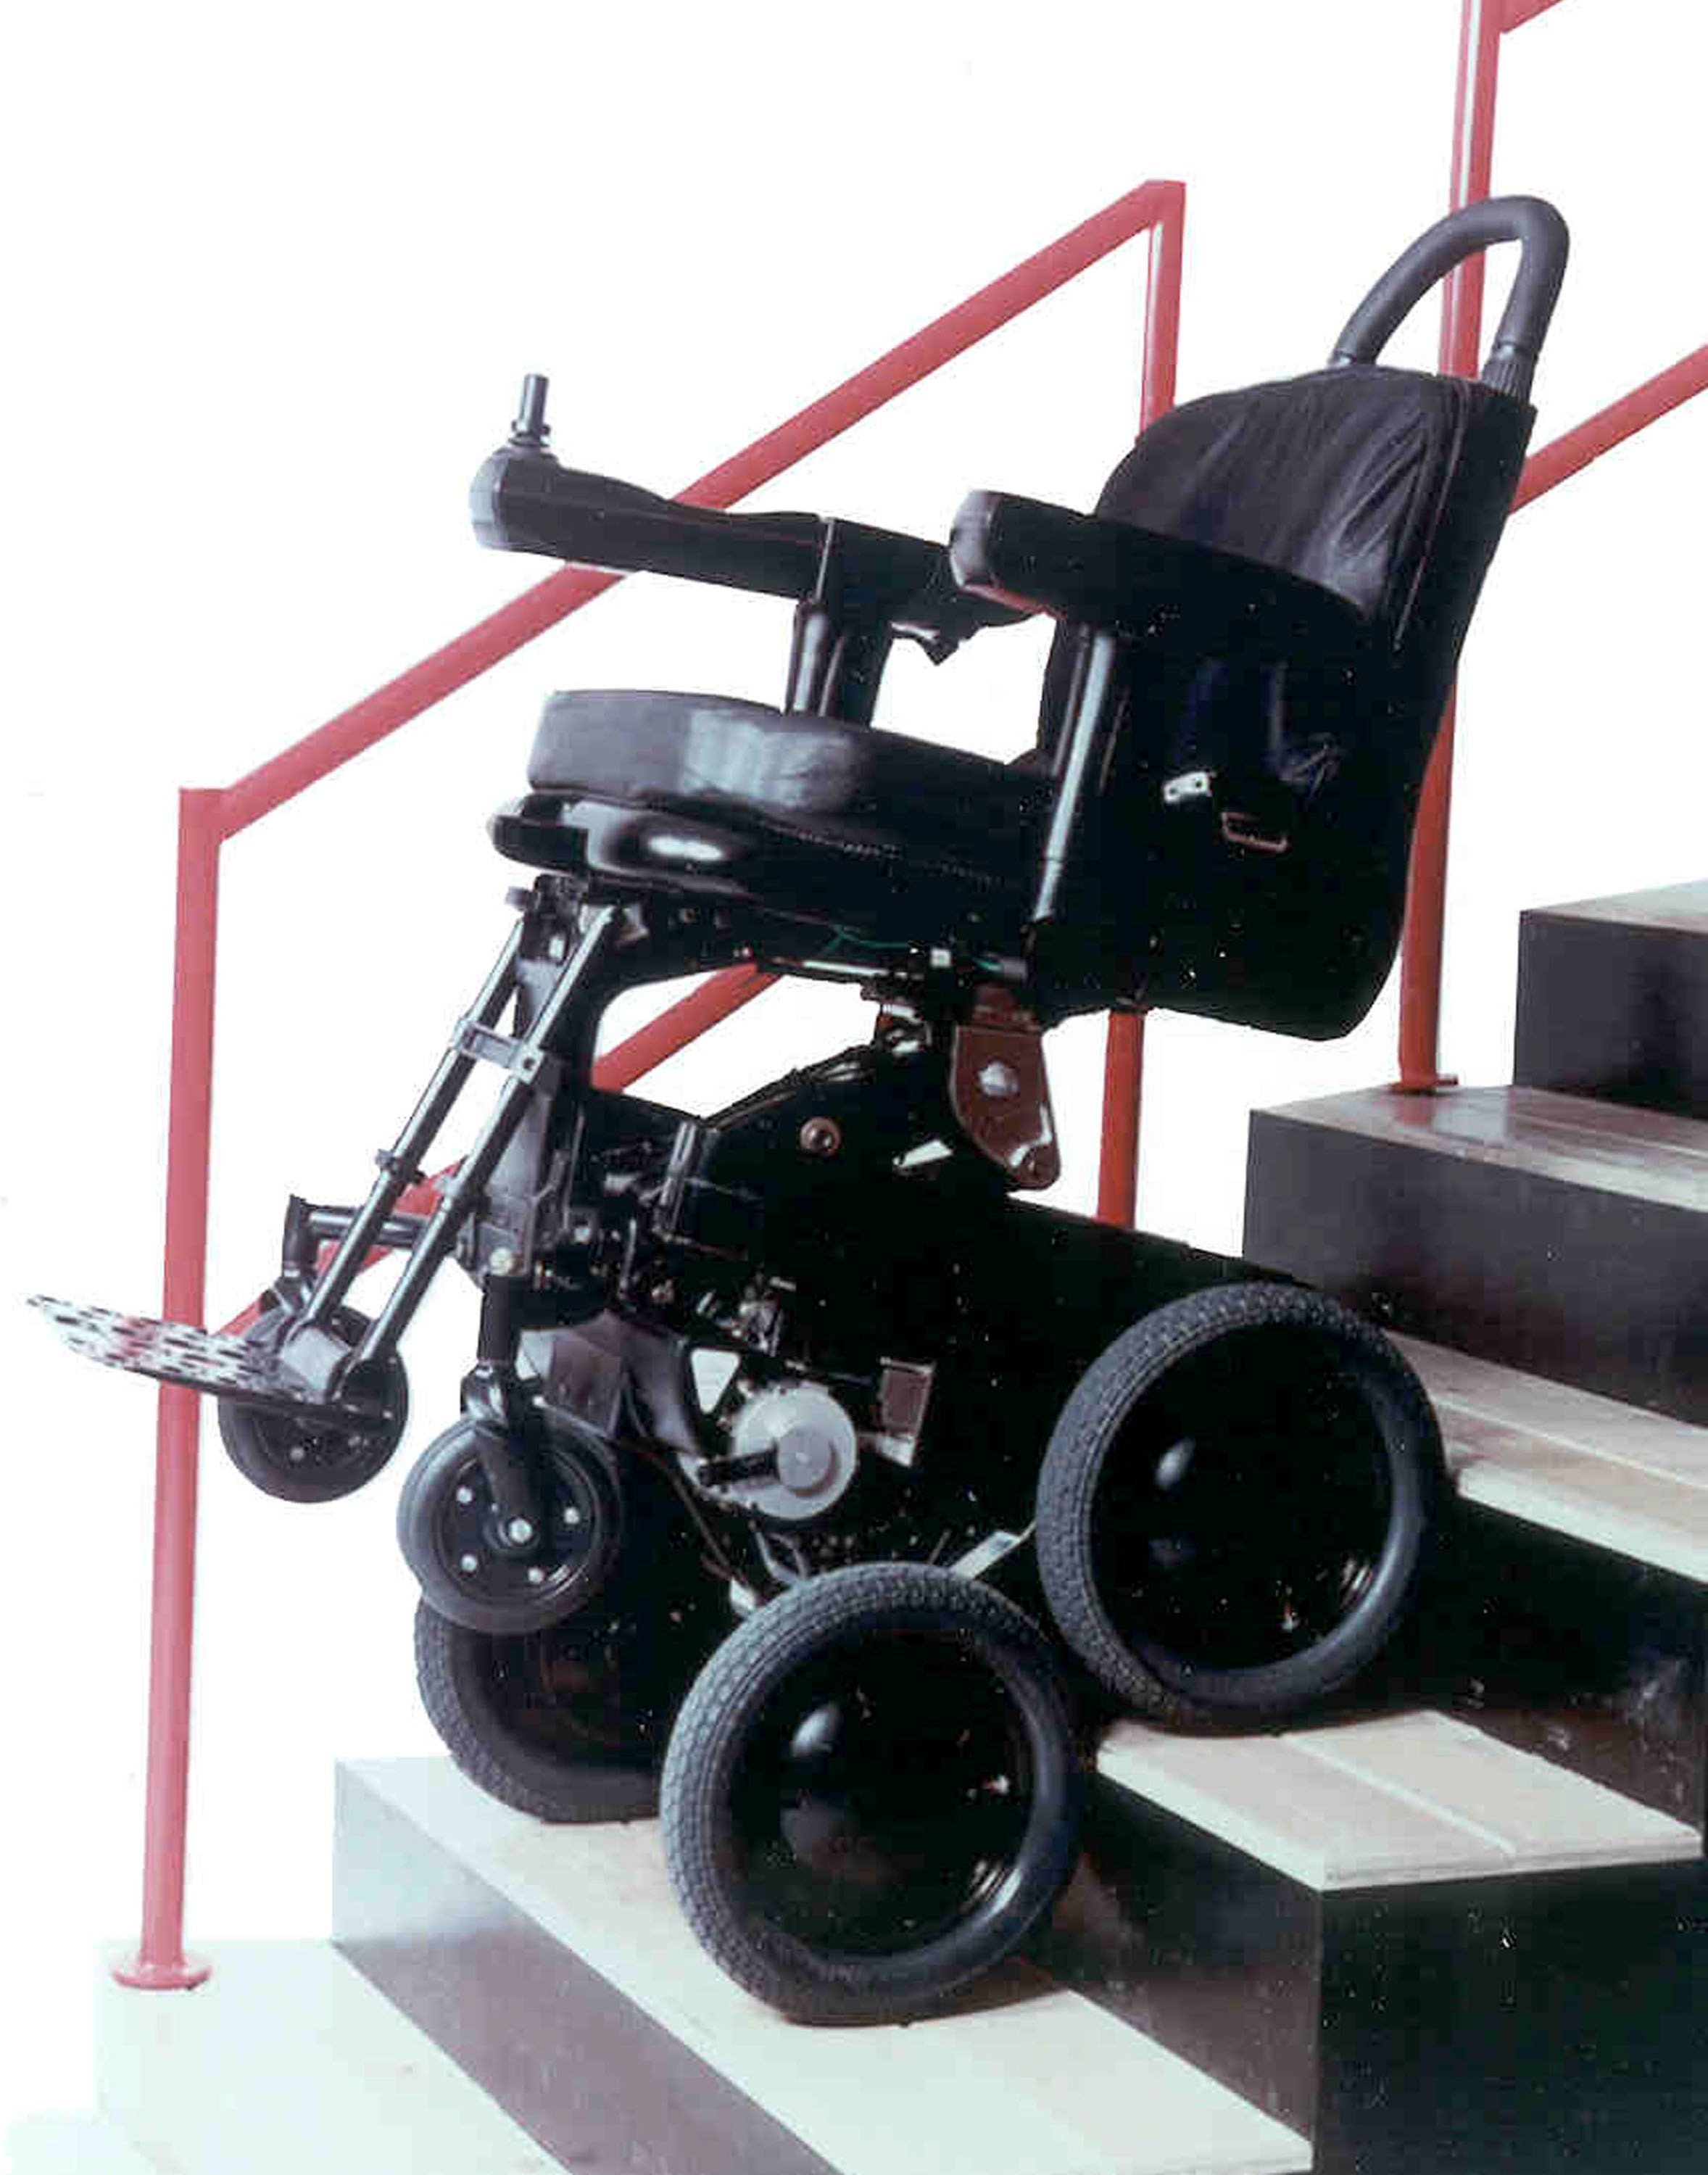 Stair Climbing Wheelchair Ibot Mobility System